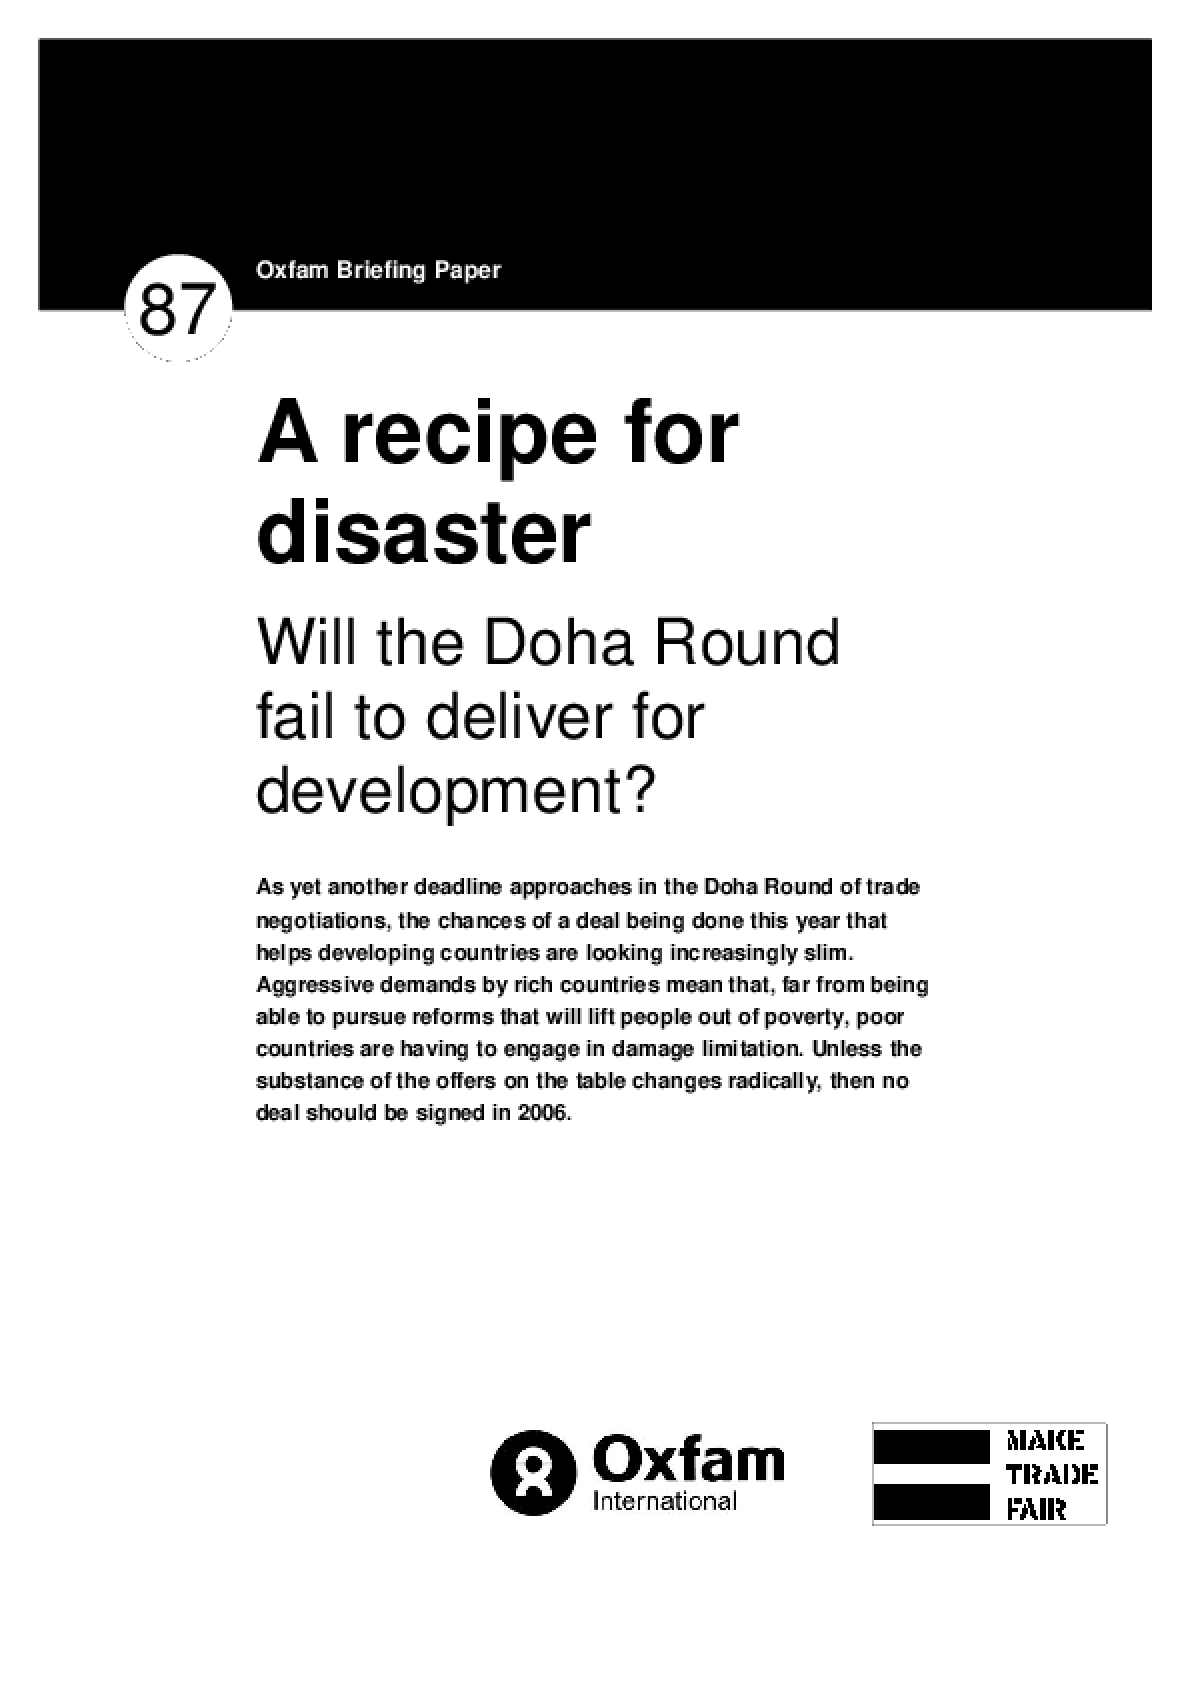 A Recipe for Disaster: Will the Doha Round Fail to Deliver for Development?